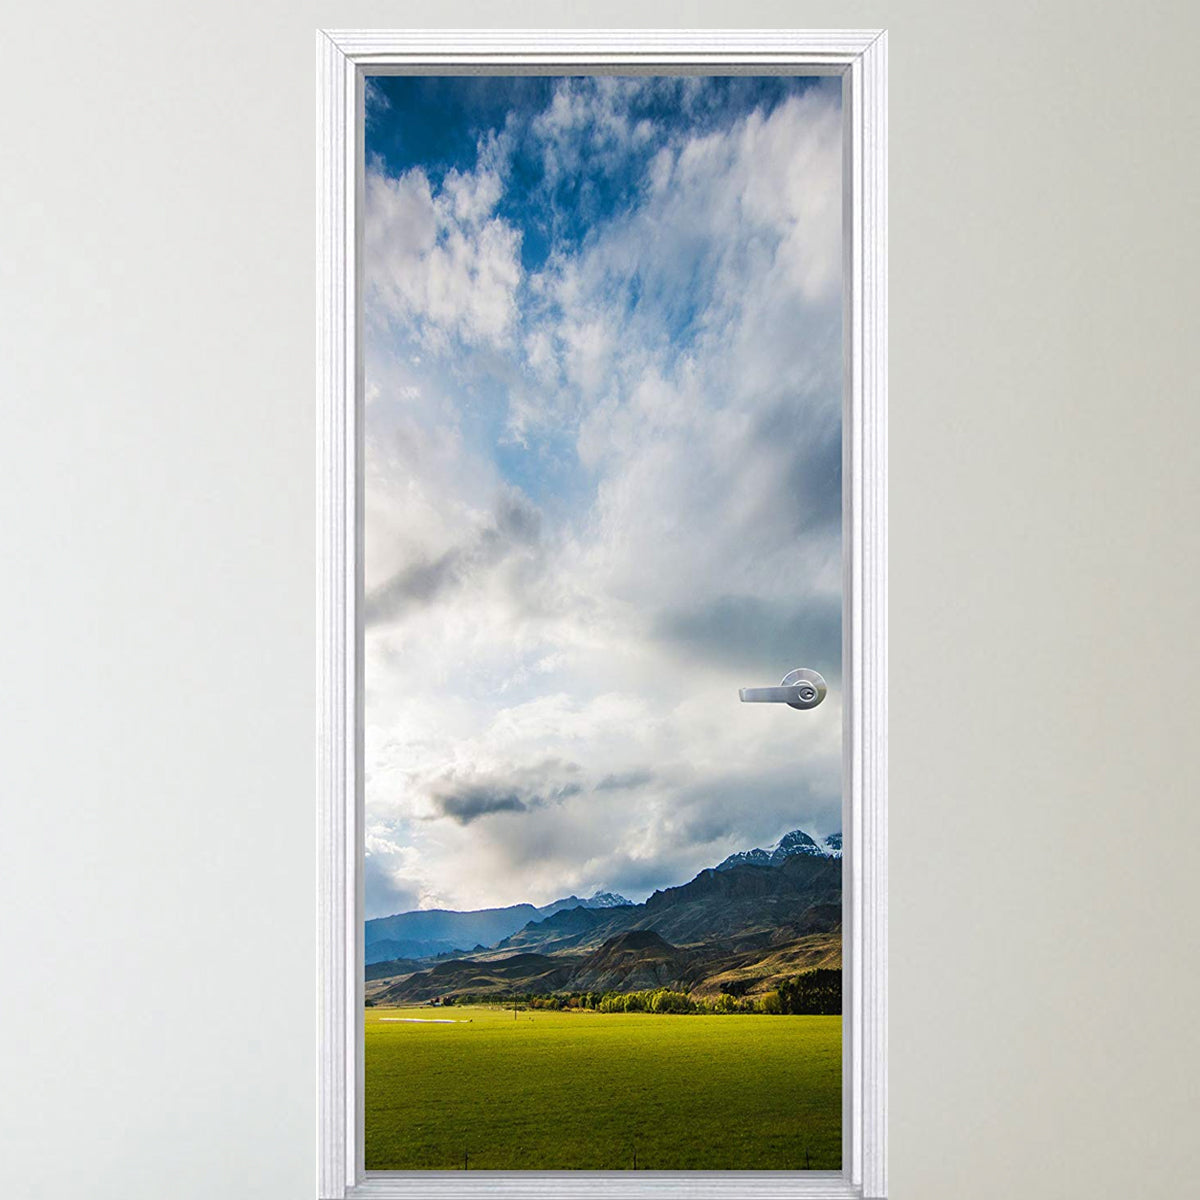 VWAQ Mountain Range Door Decal- Grass Vinyl Door Mural Decor - DM10